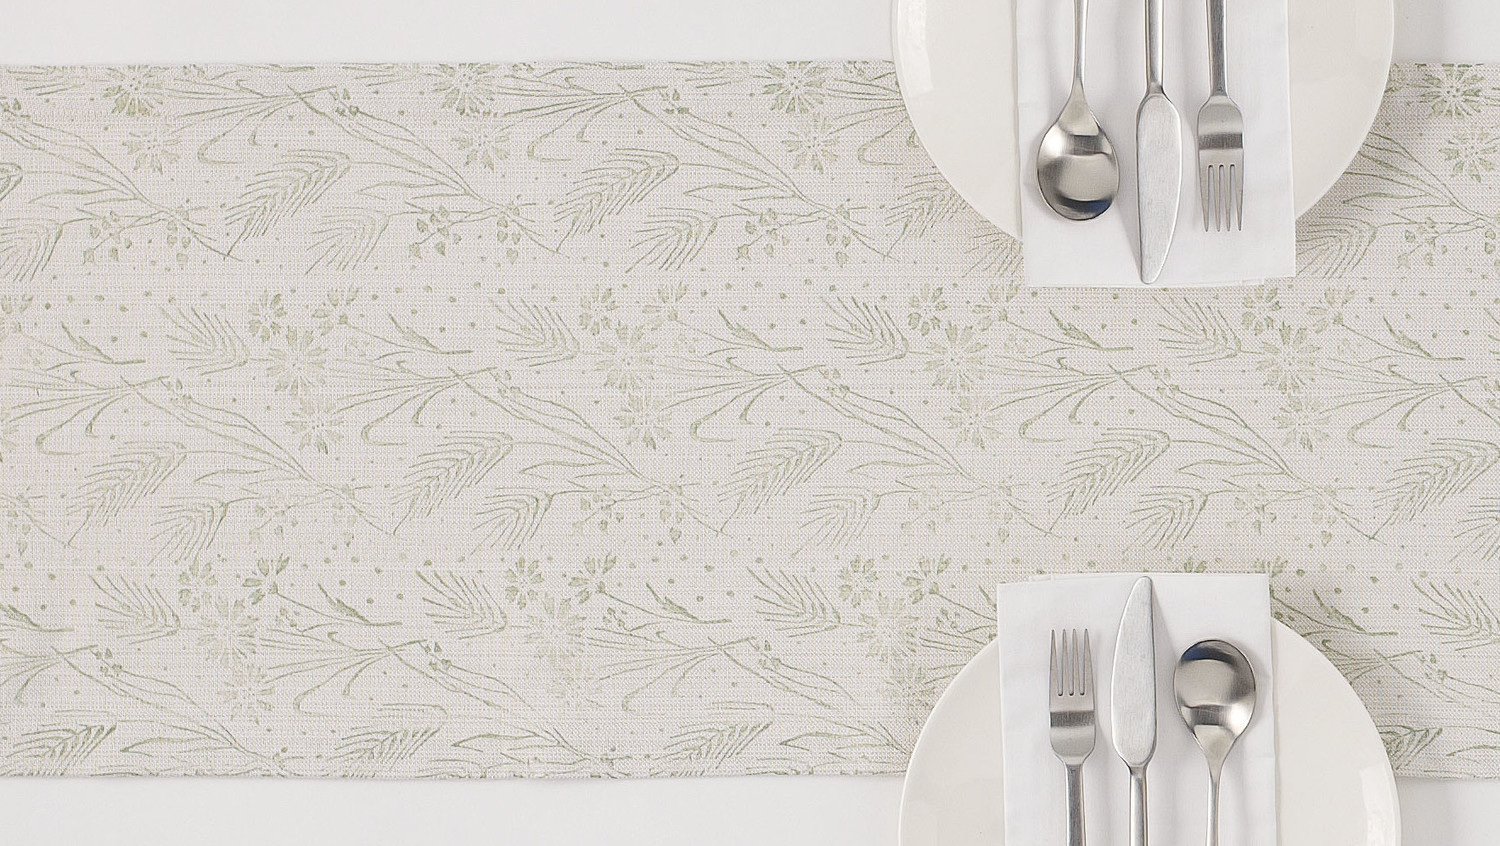 Floral-Wheat Patterned Table Runner